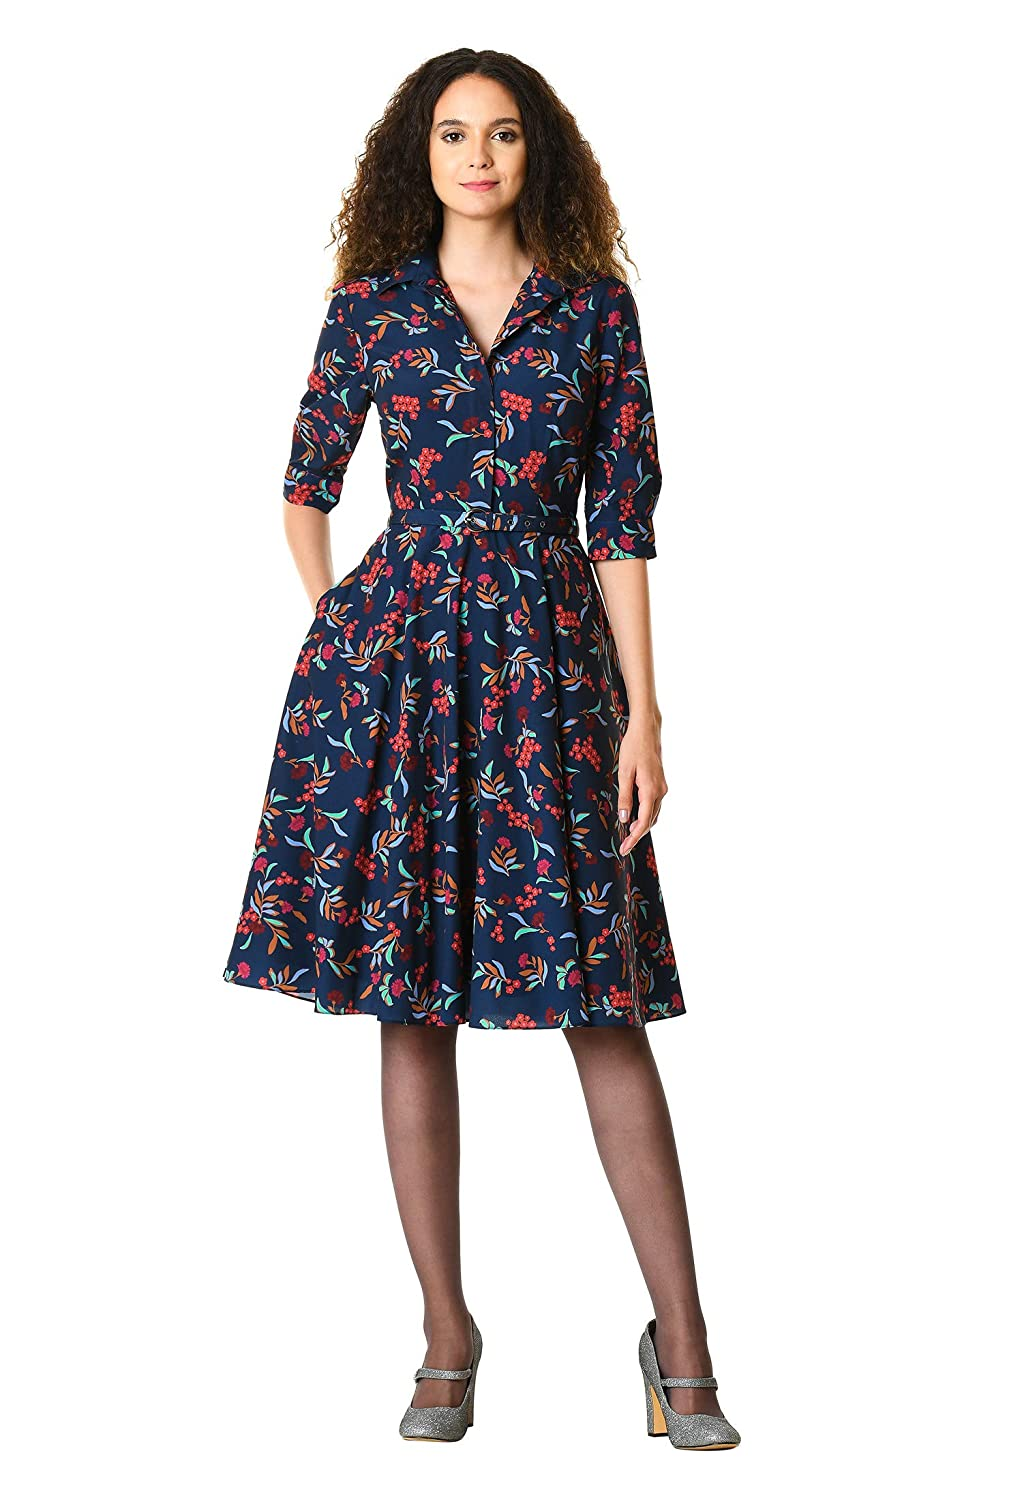 eShakti Women's Floral sprig Print Crepe Belted Shirtdress CL0060113